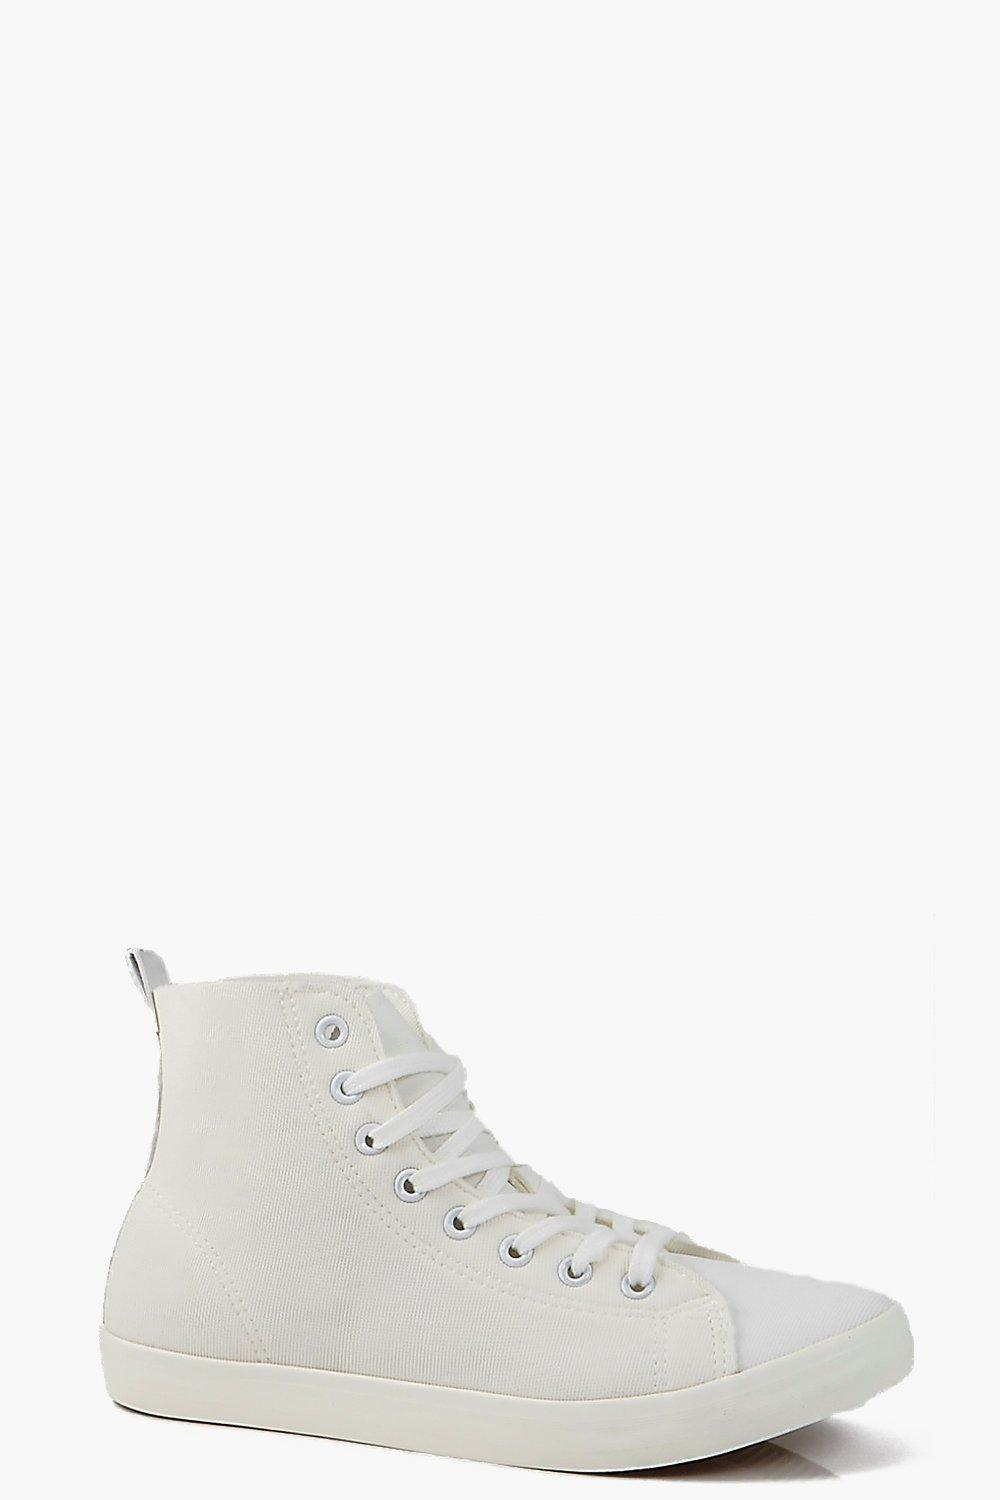 Lily Neoprene Lace Up Hi Top